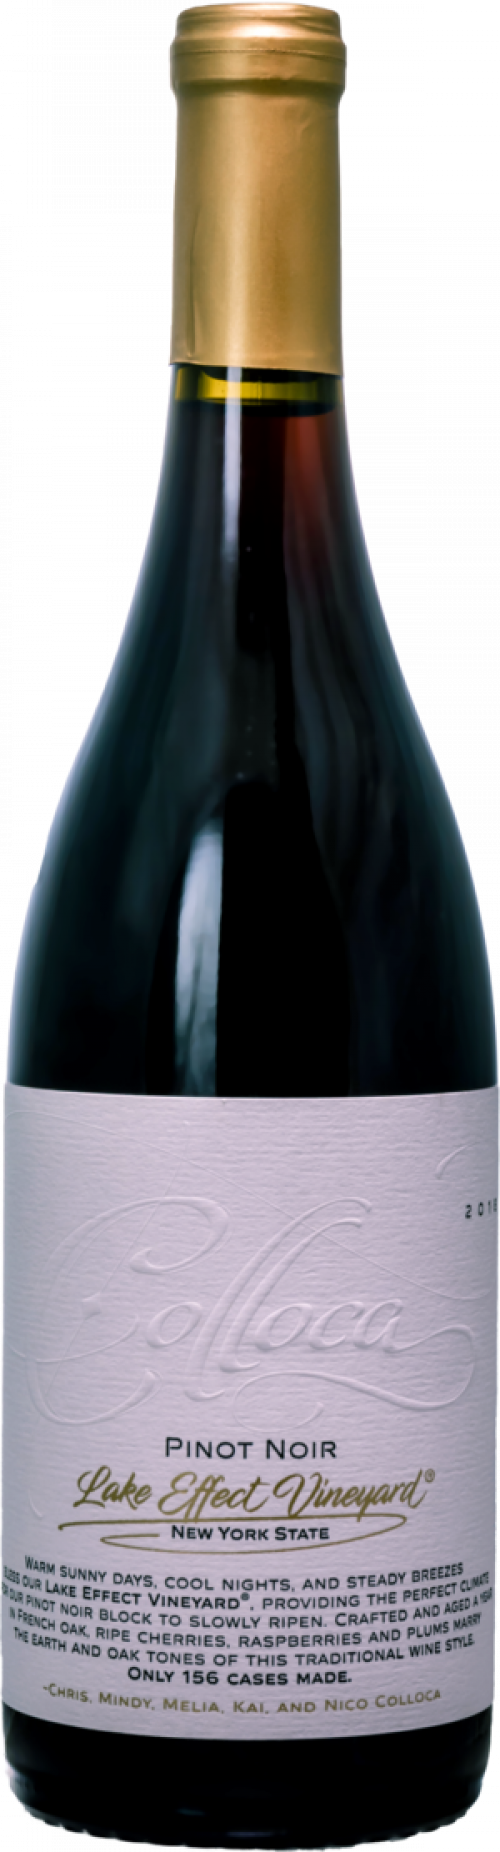 2018 Colloca Lake Effect Pinot Noir 750ml